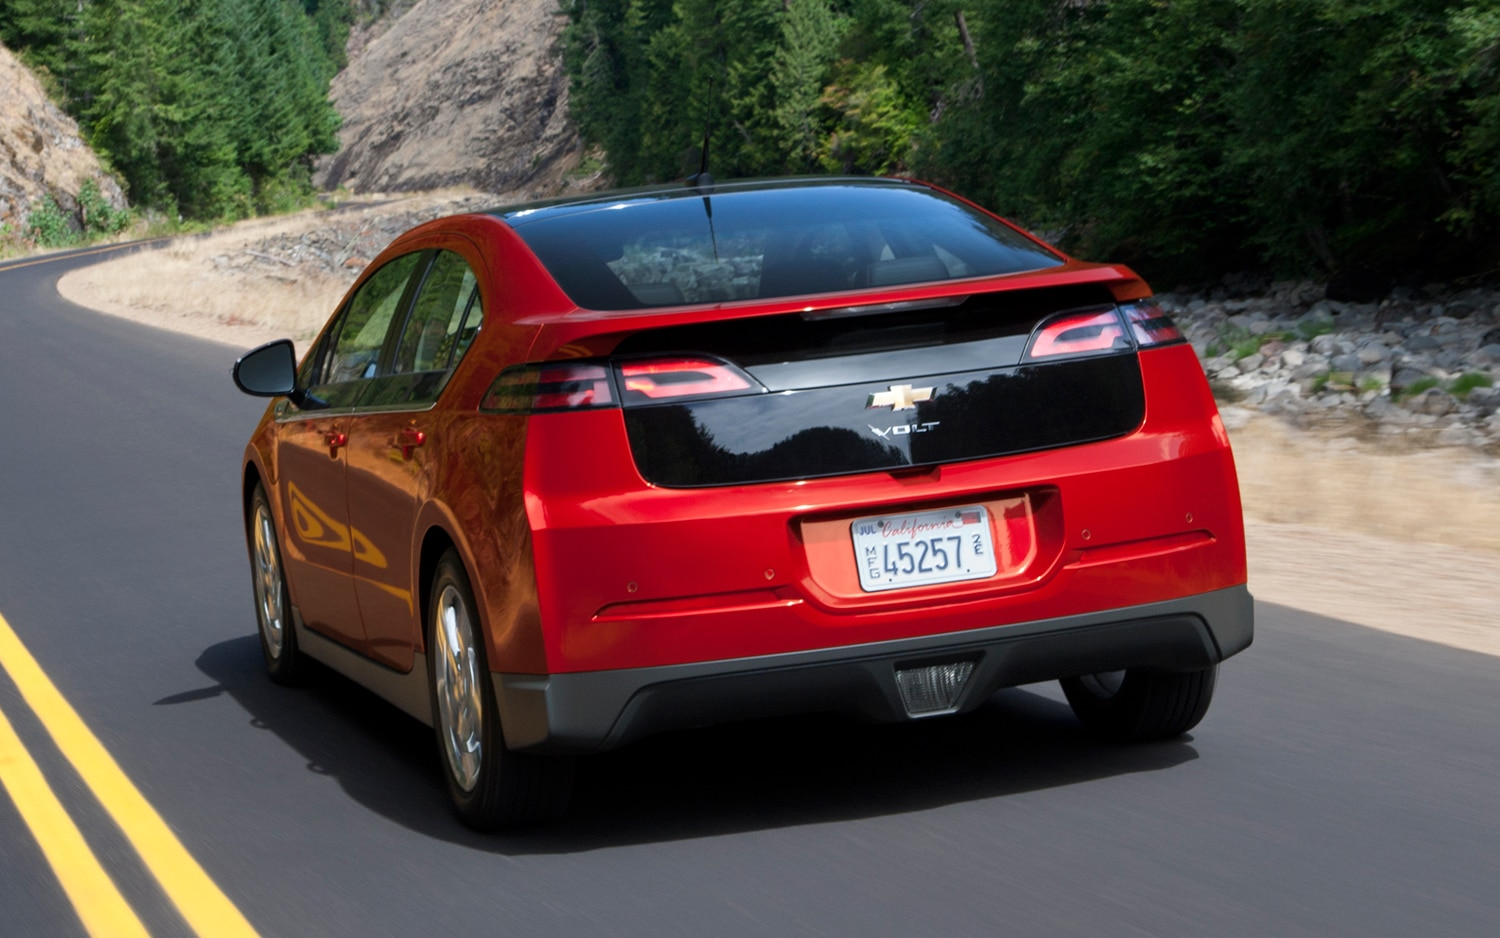 2012 Chevrolet Volt Rear Three Quarter111